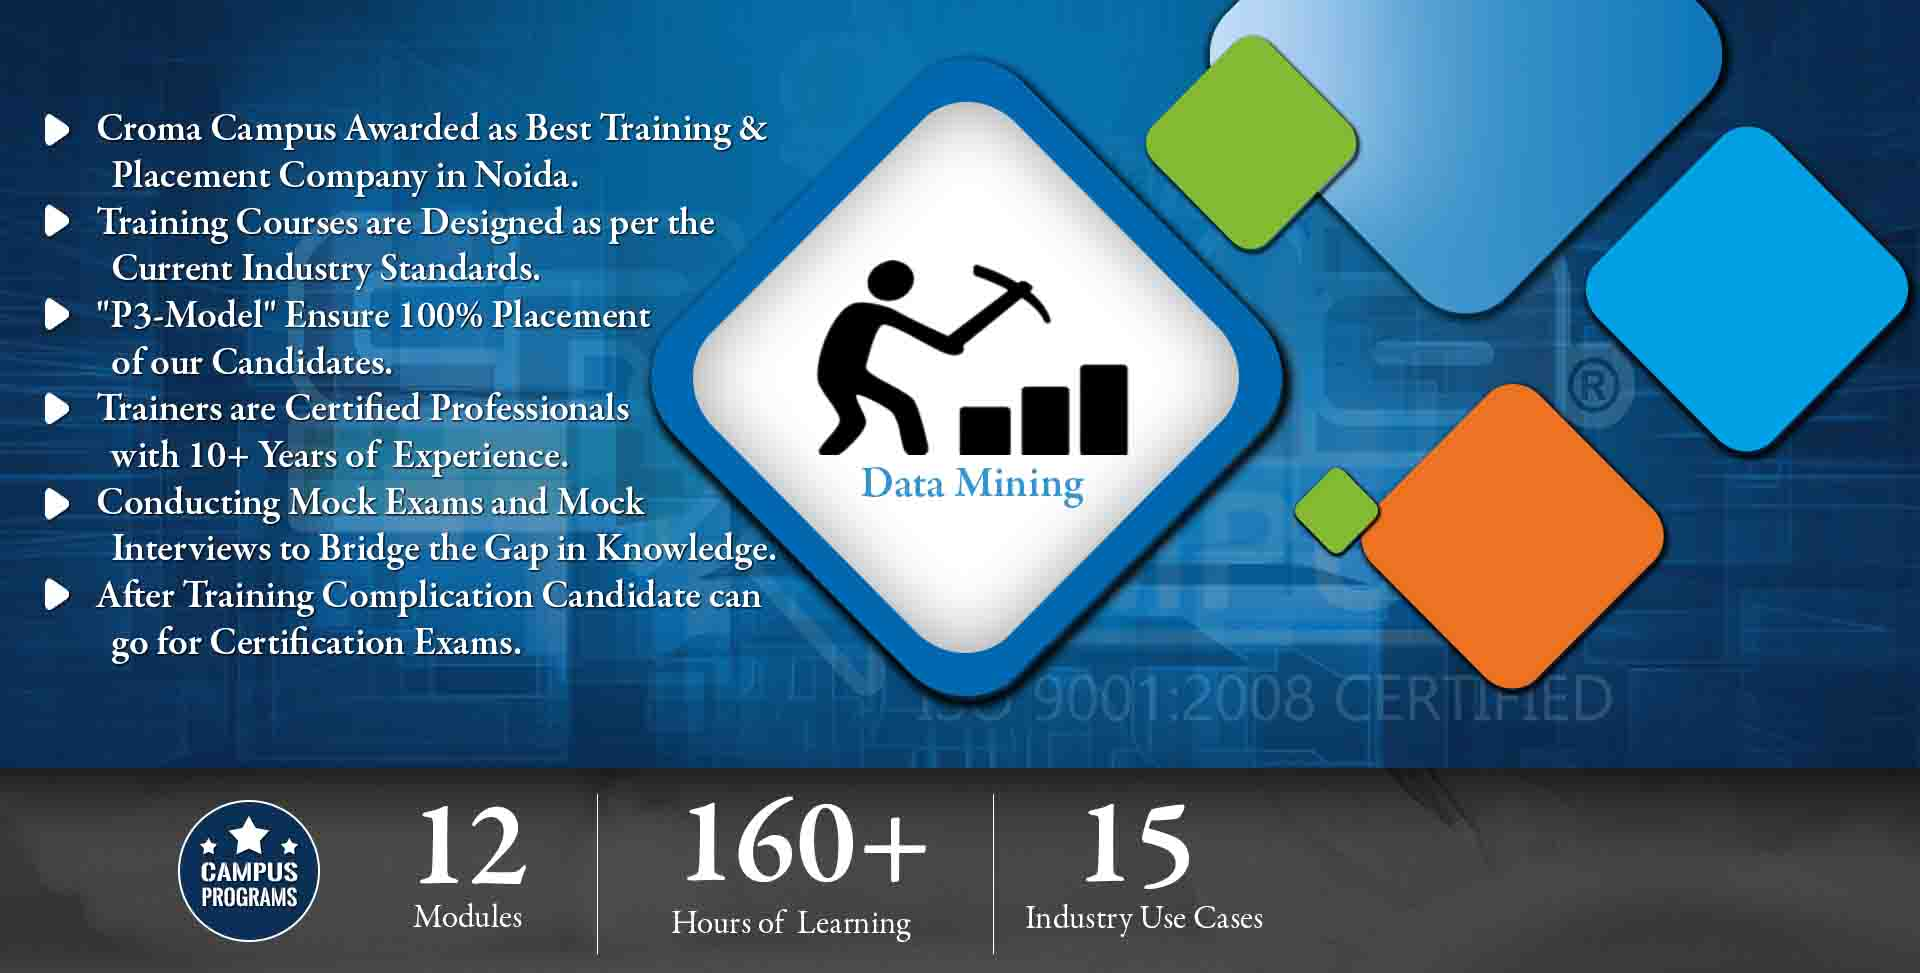 Data Mining Training in Noida- Croma Campus